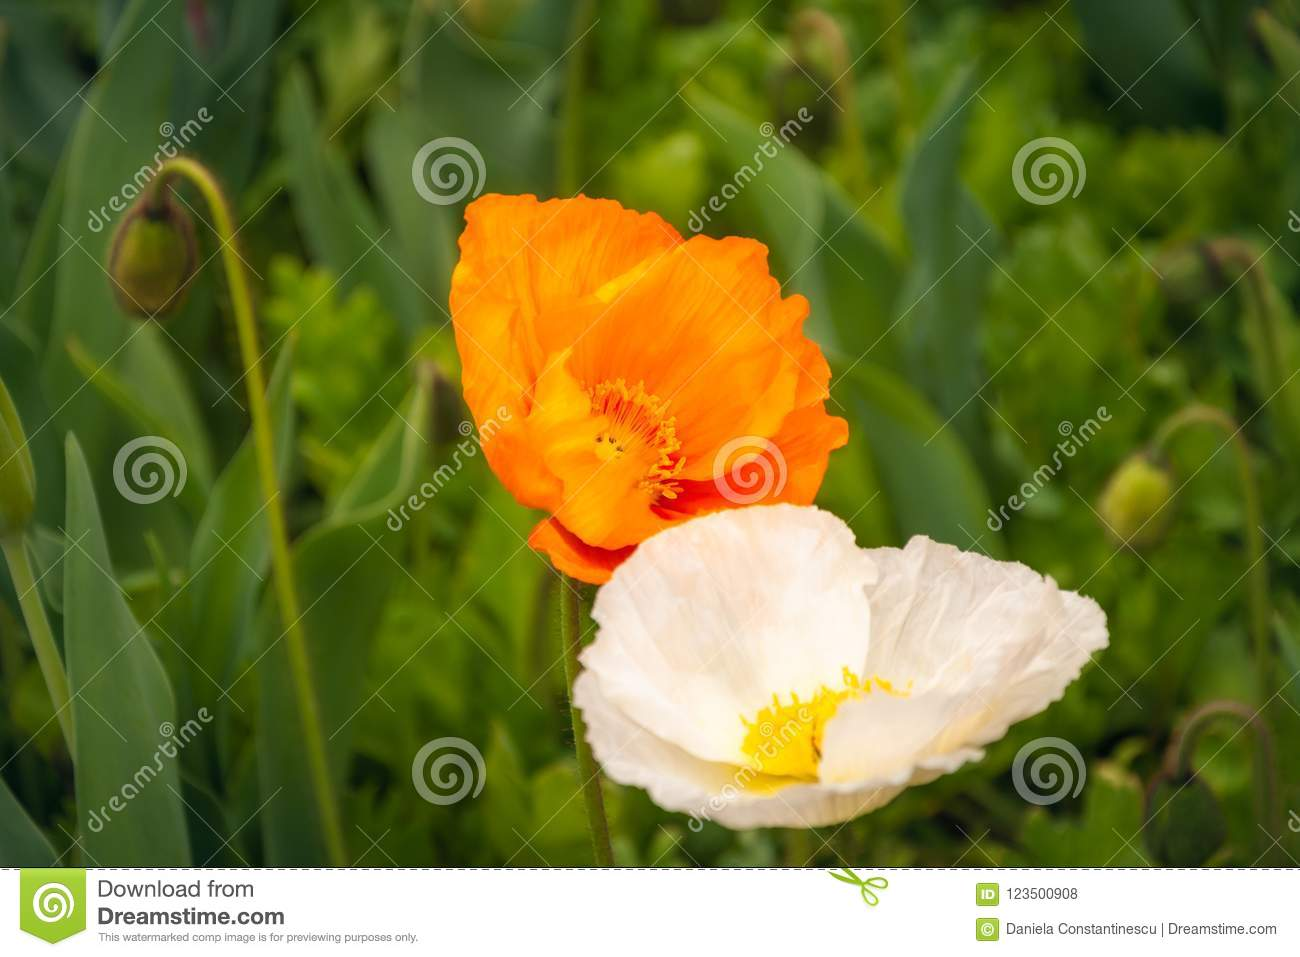 Orange and White Poppies at the Floriade in Canberra